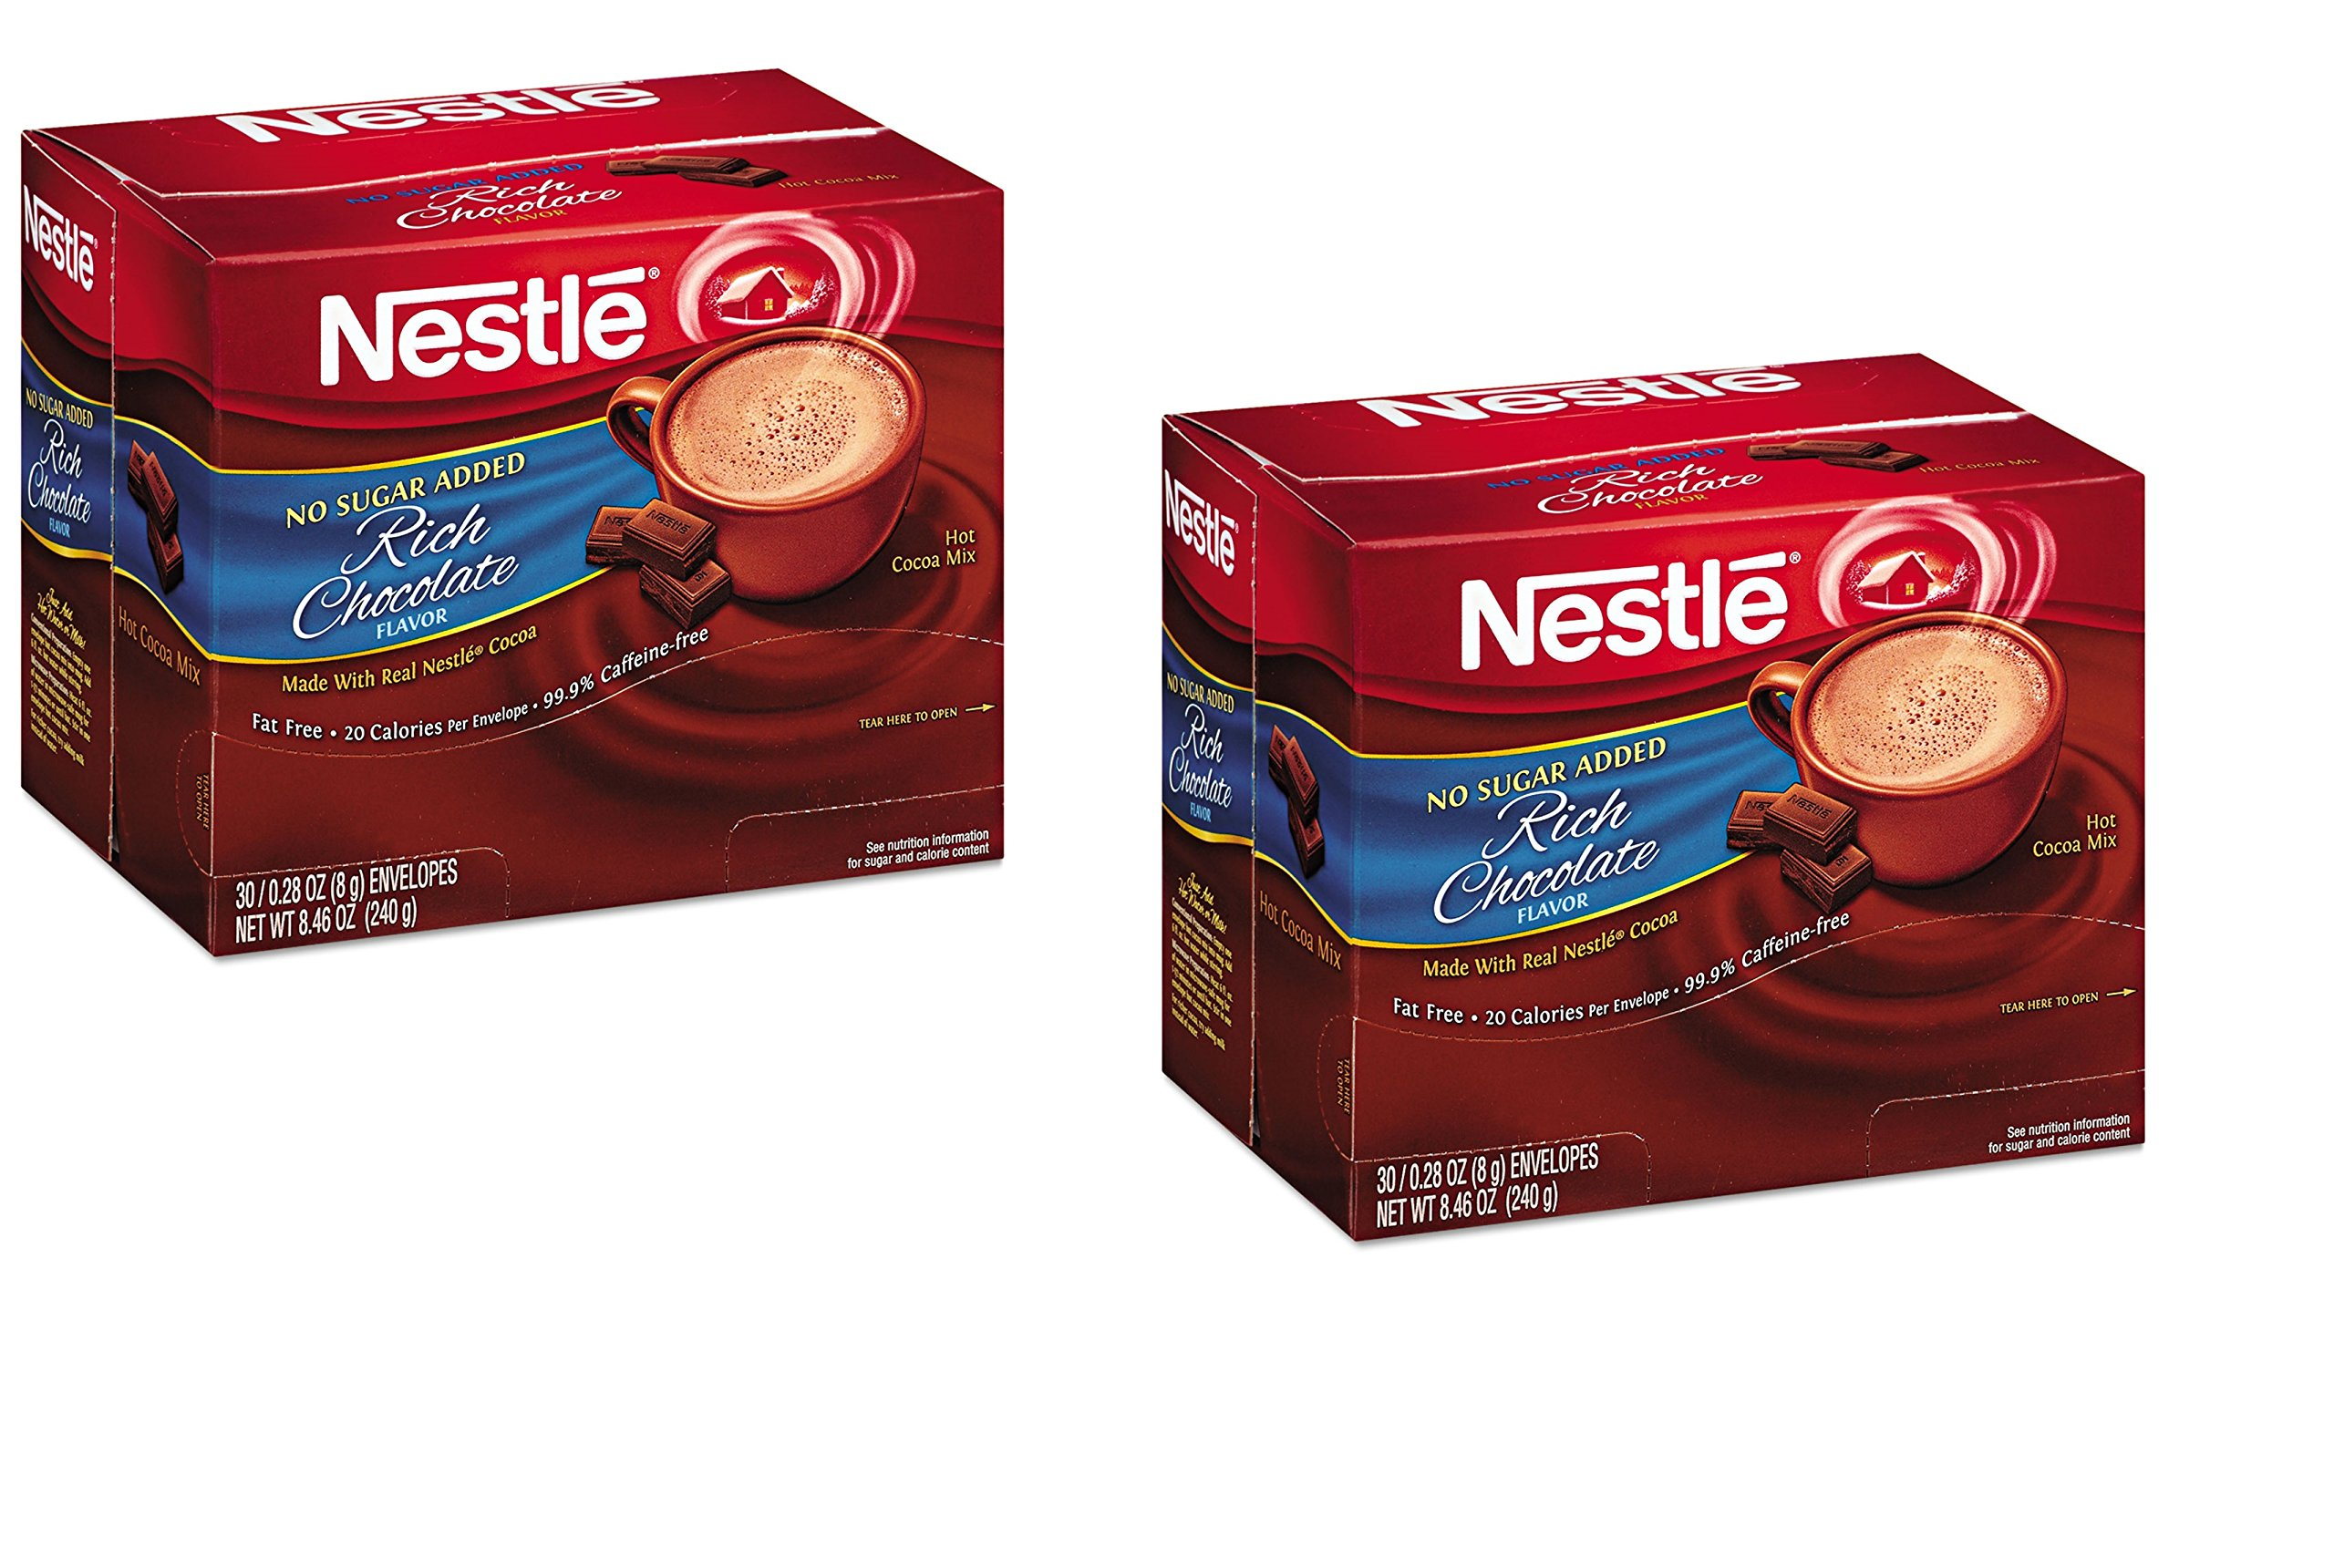 Nestle Cocoa Mix No Sugar Added 60 Count .28 Oz Packets (2 - 30 ct boxes) by Nestle